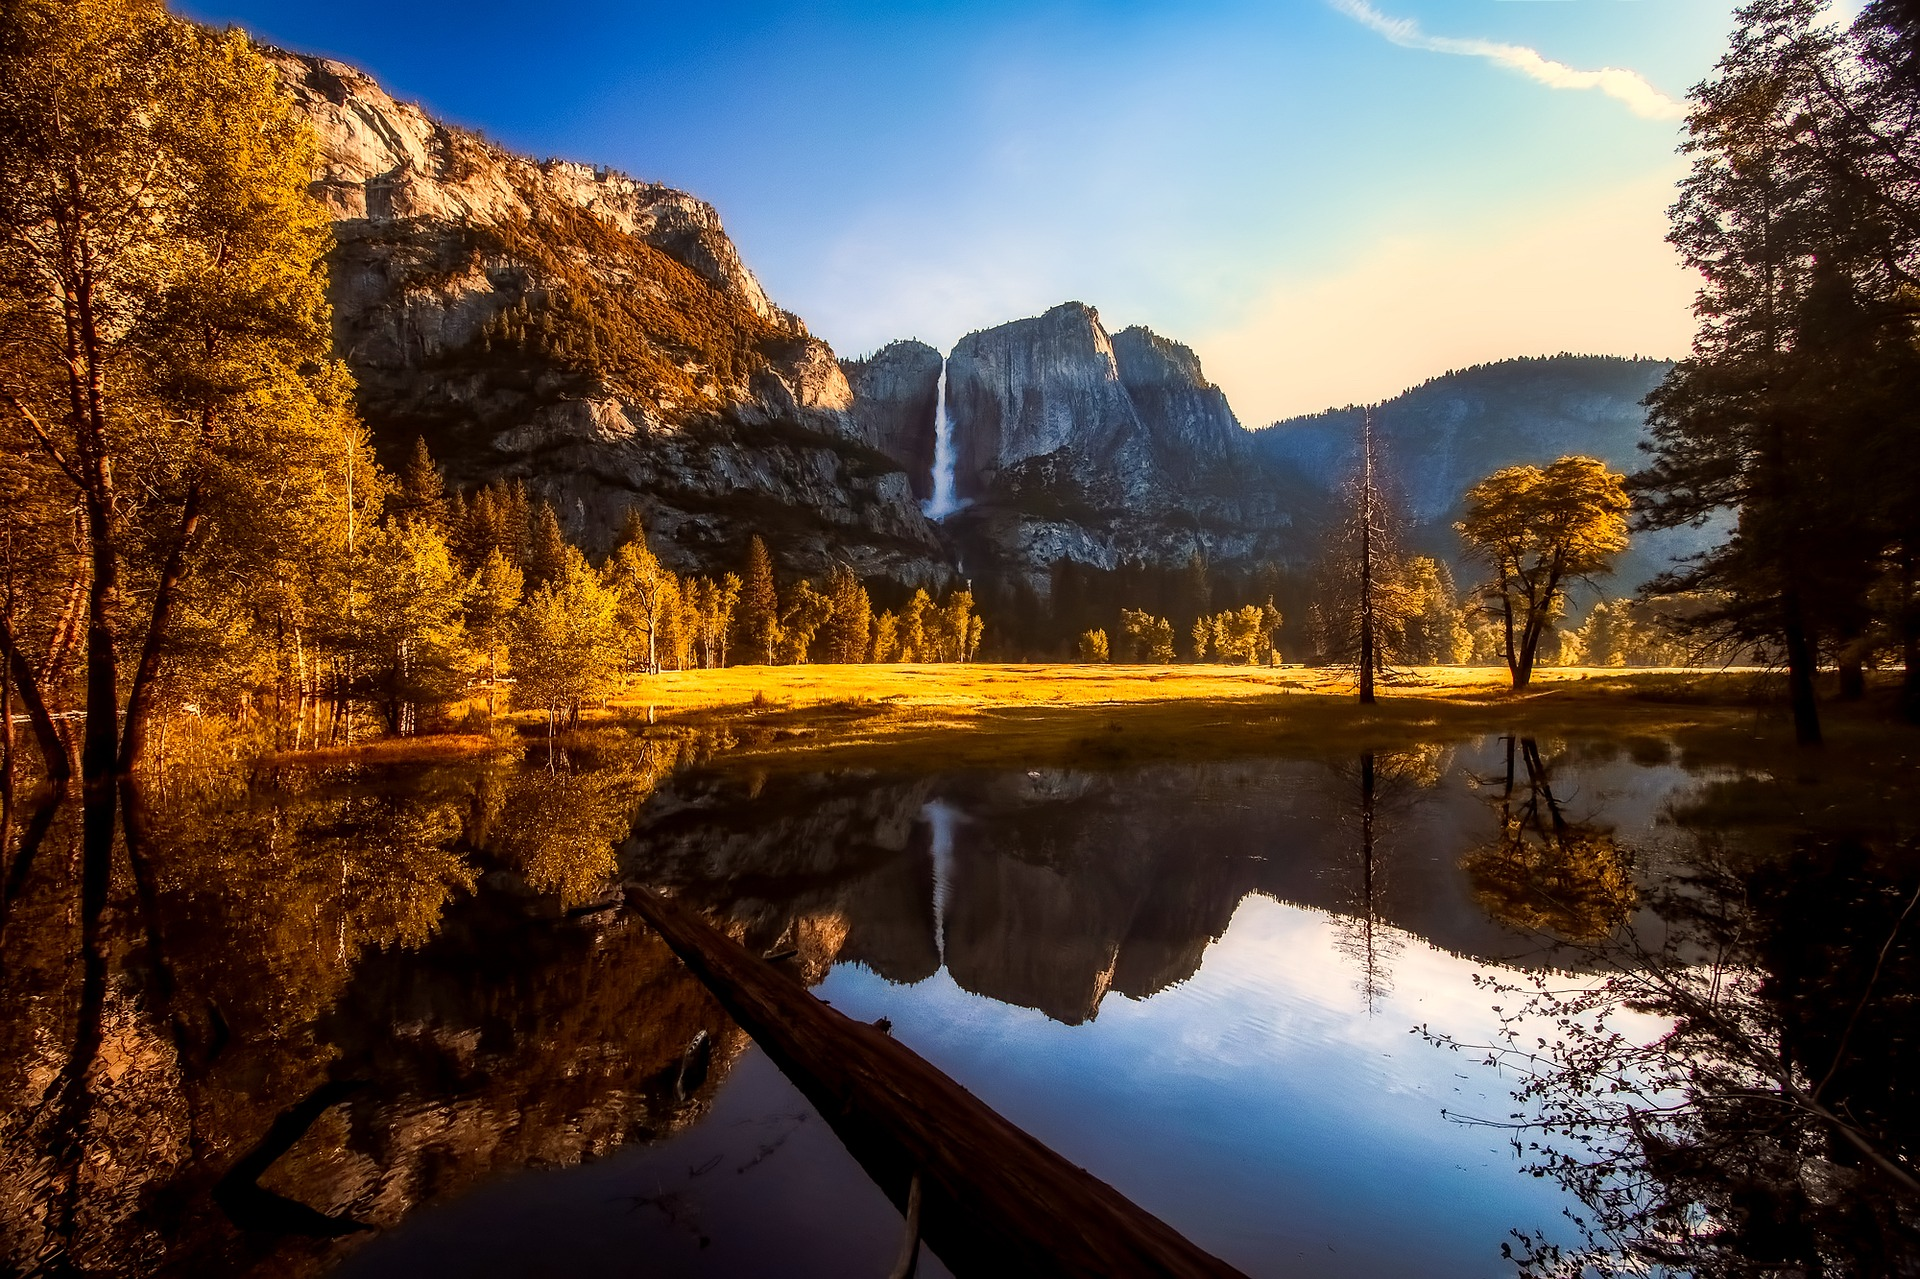 Waterfall reflection at Yosemite National Park, California, USA